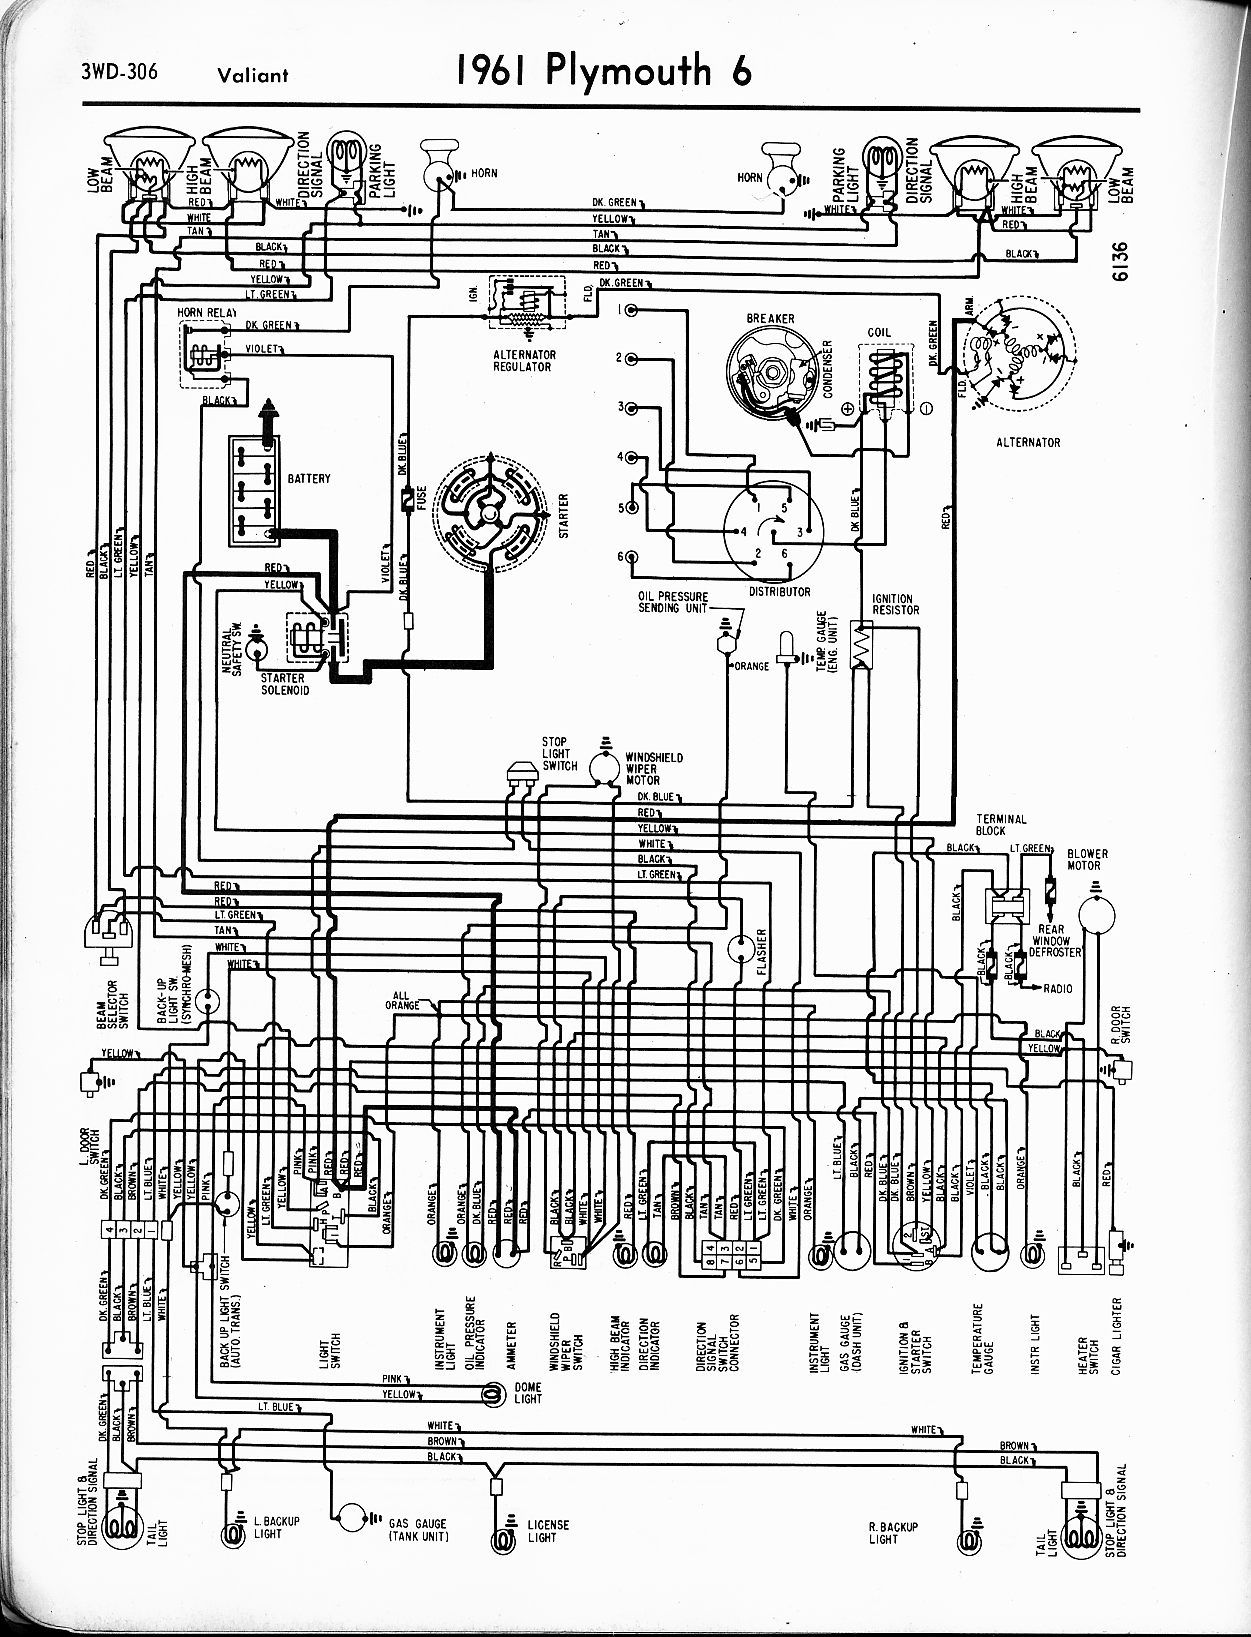 1967 plymouth fury wiring diagram schematic wiring diagram u2022 rh championapp co 1967 Plymouth Satellite 1971 Plymouth Fury